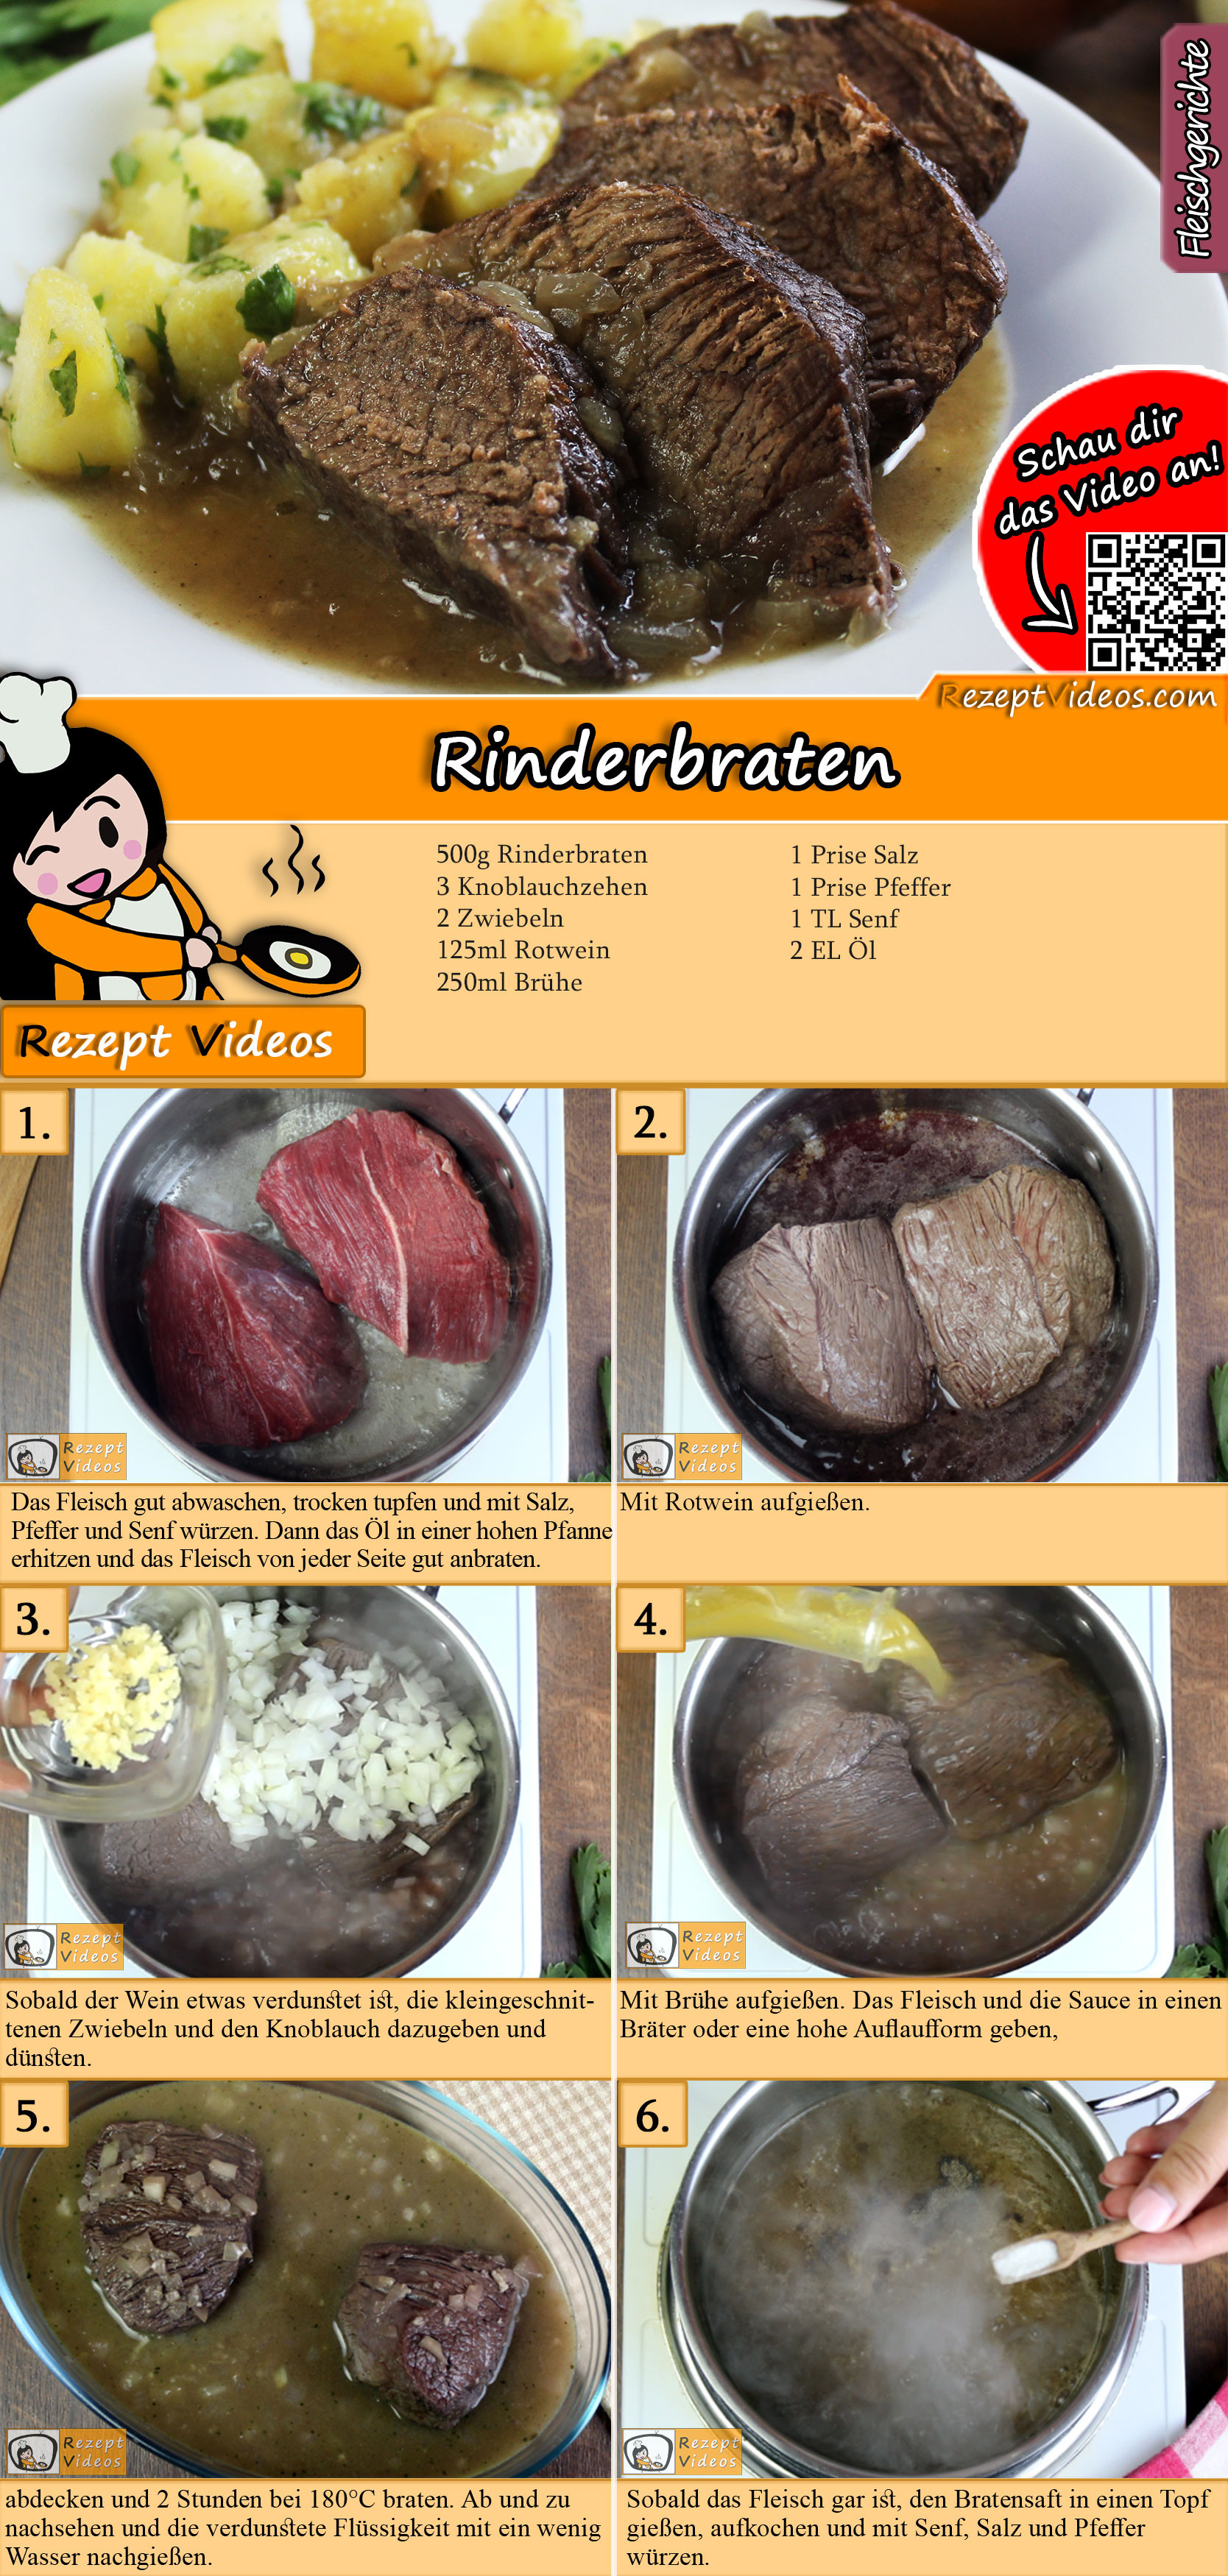 Rinderbraten Rezept mit Video